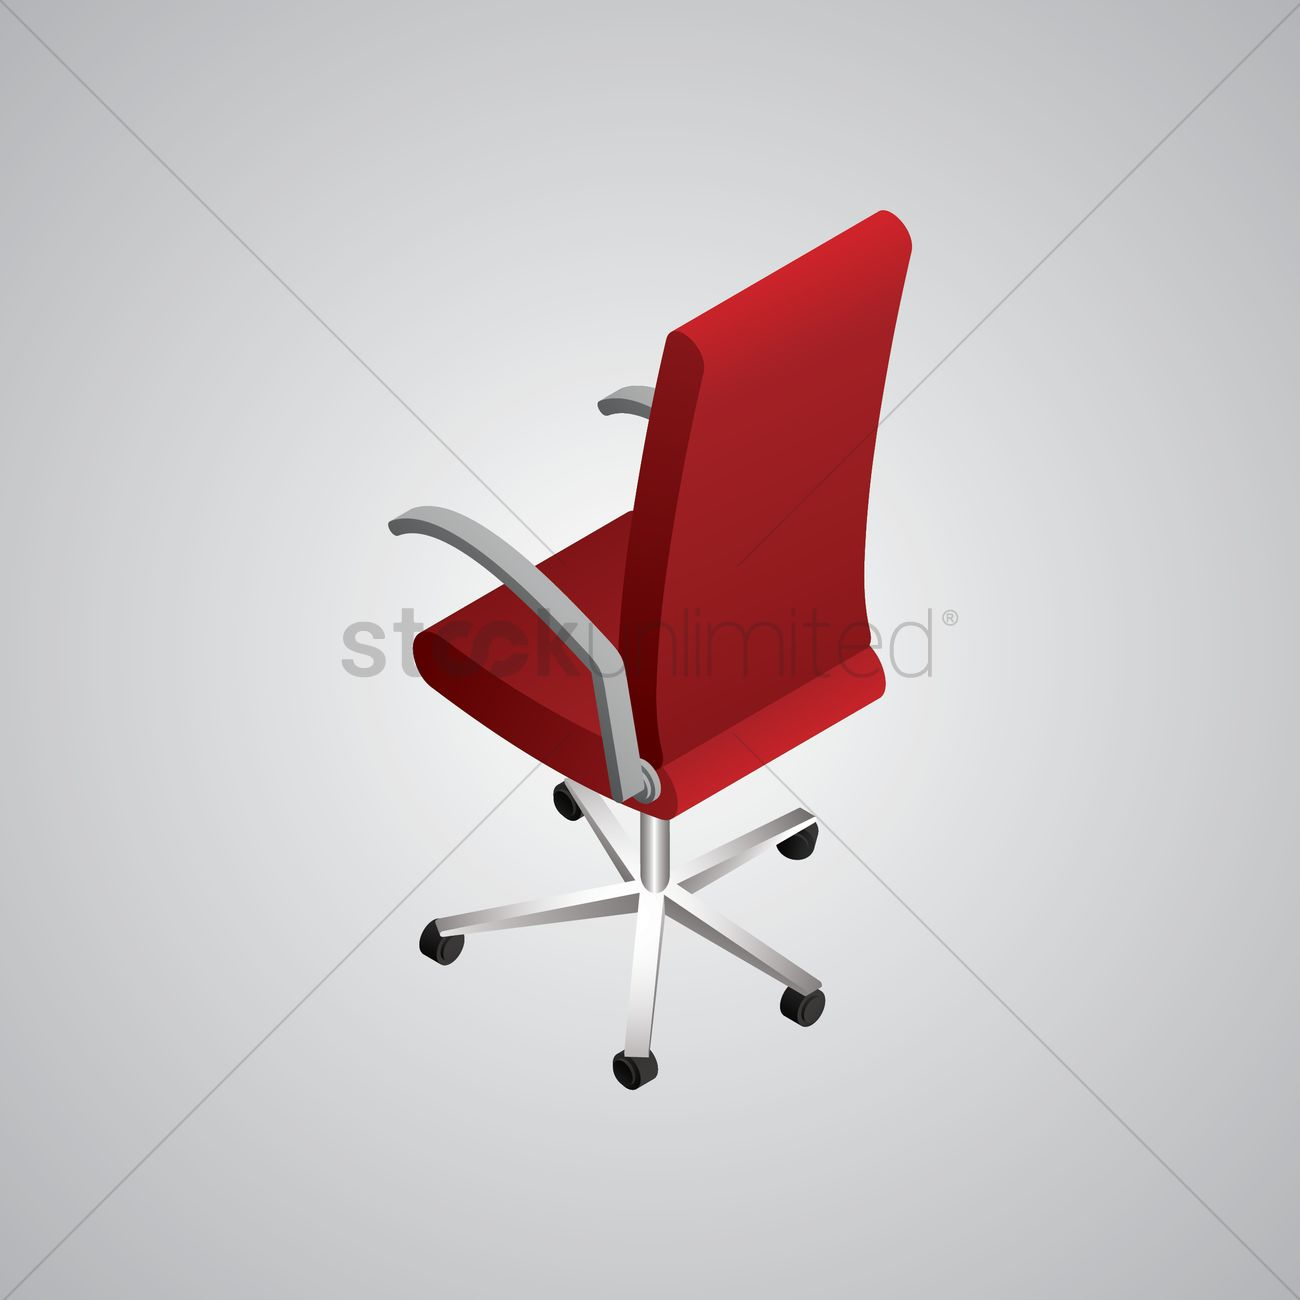 office chairs unlimited folding chair isometric vector image 1608144 stockunlimited